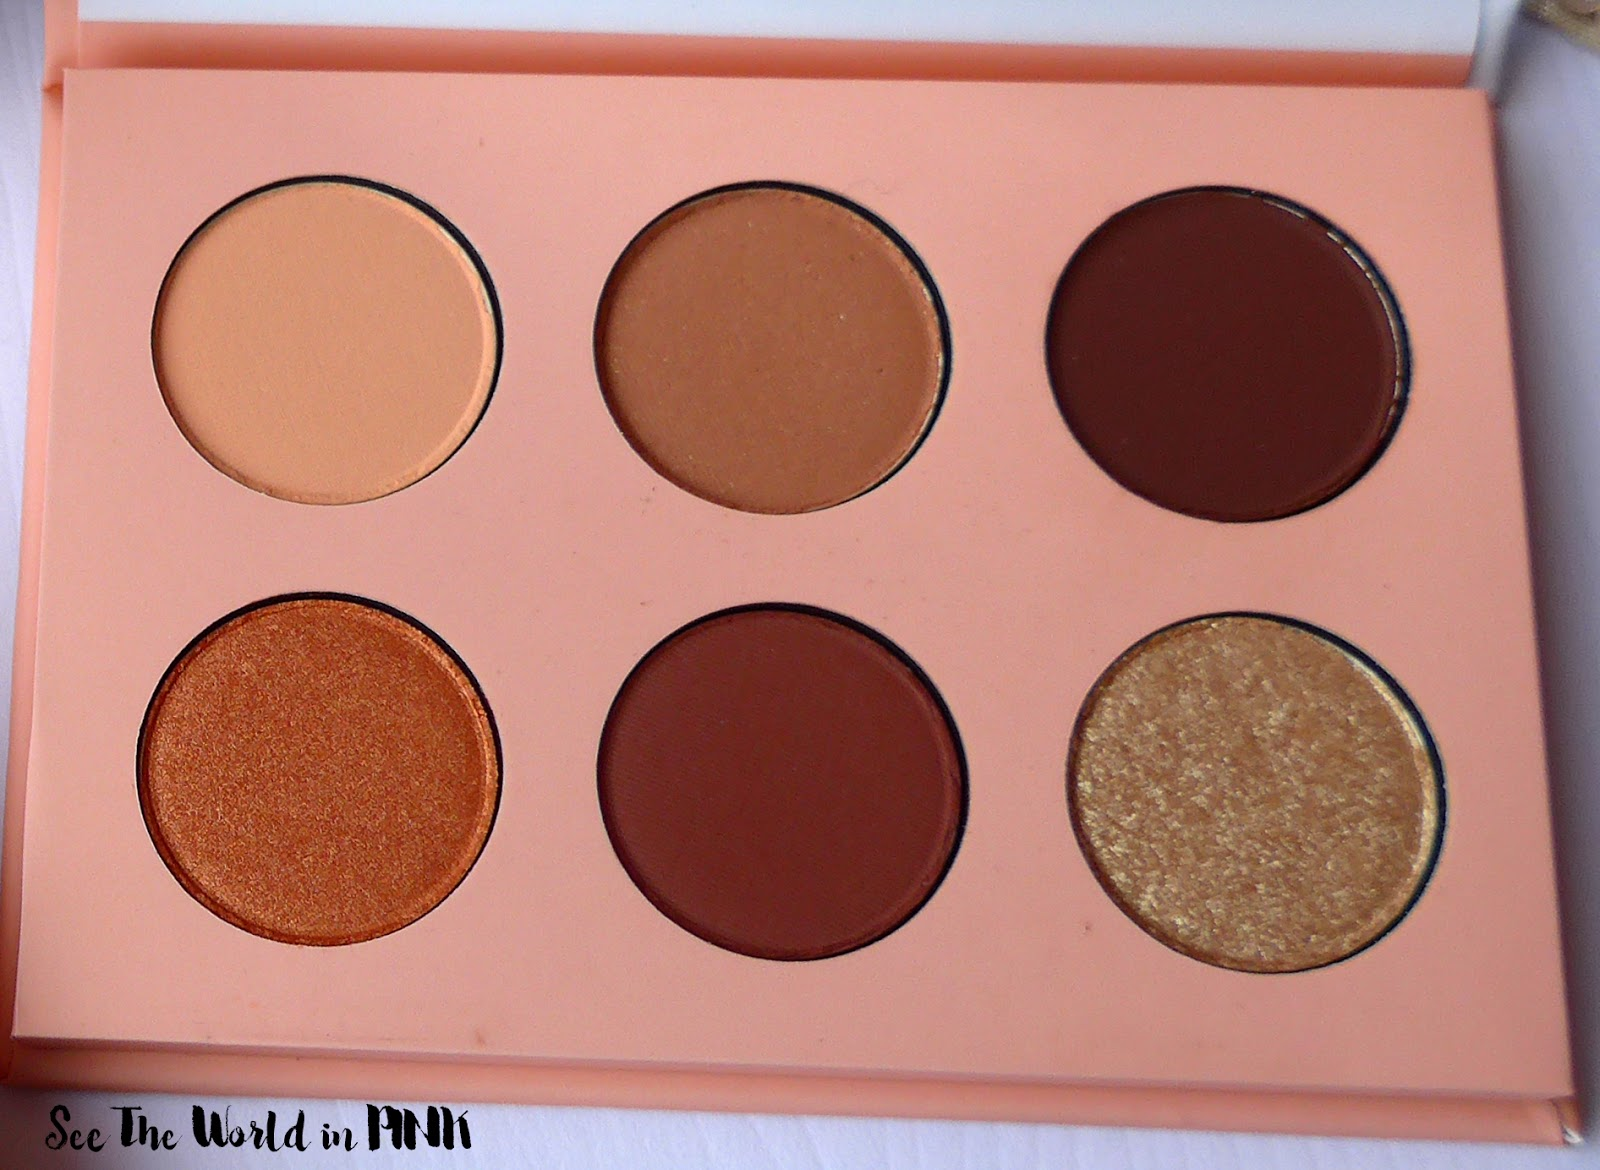 ColourPop Take Me Home Pressed Powder Shadow Palette - Review, Swatches and Makeup Look!